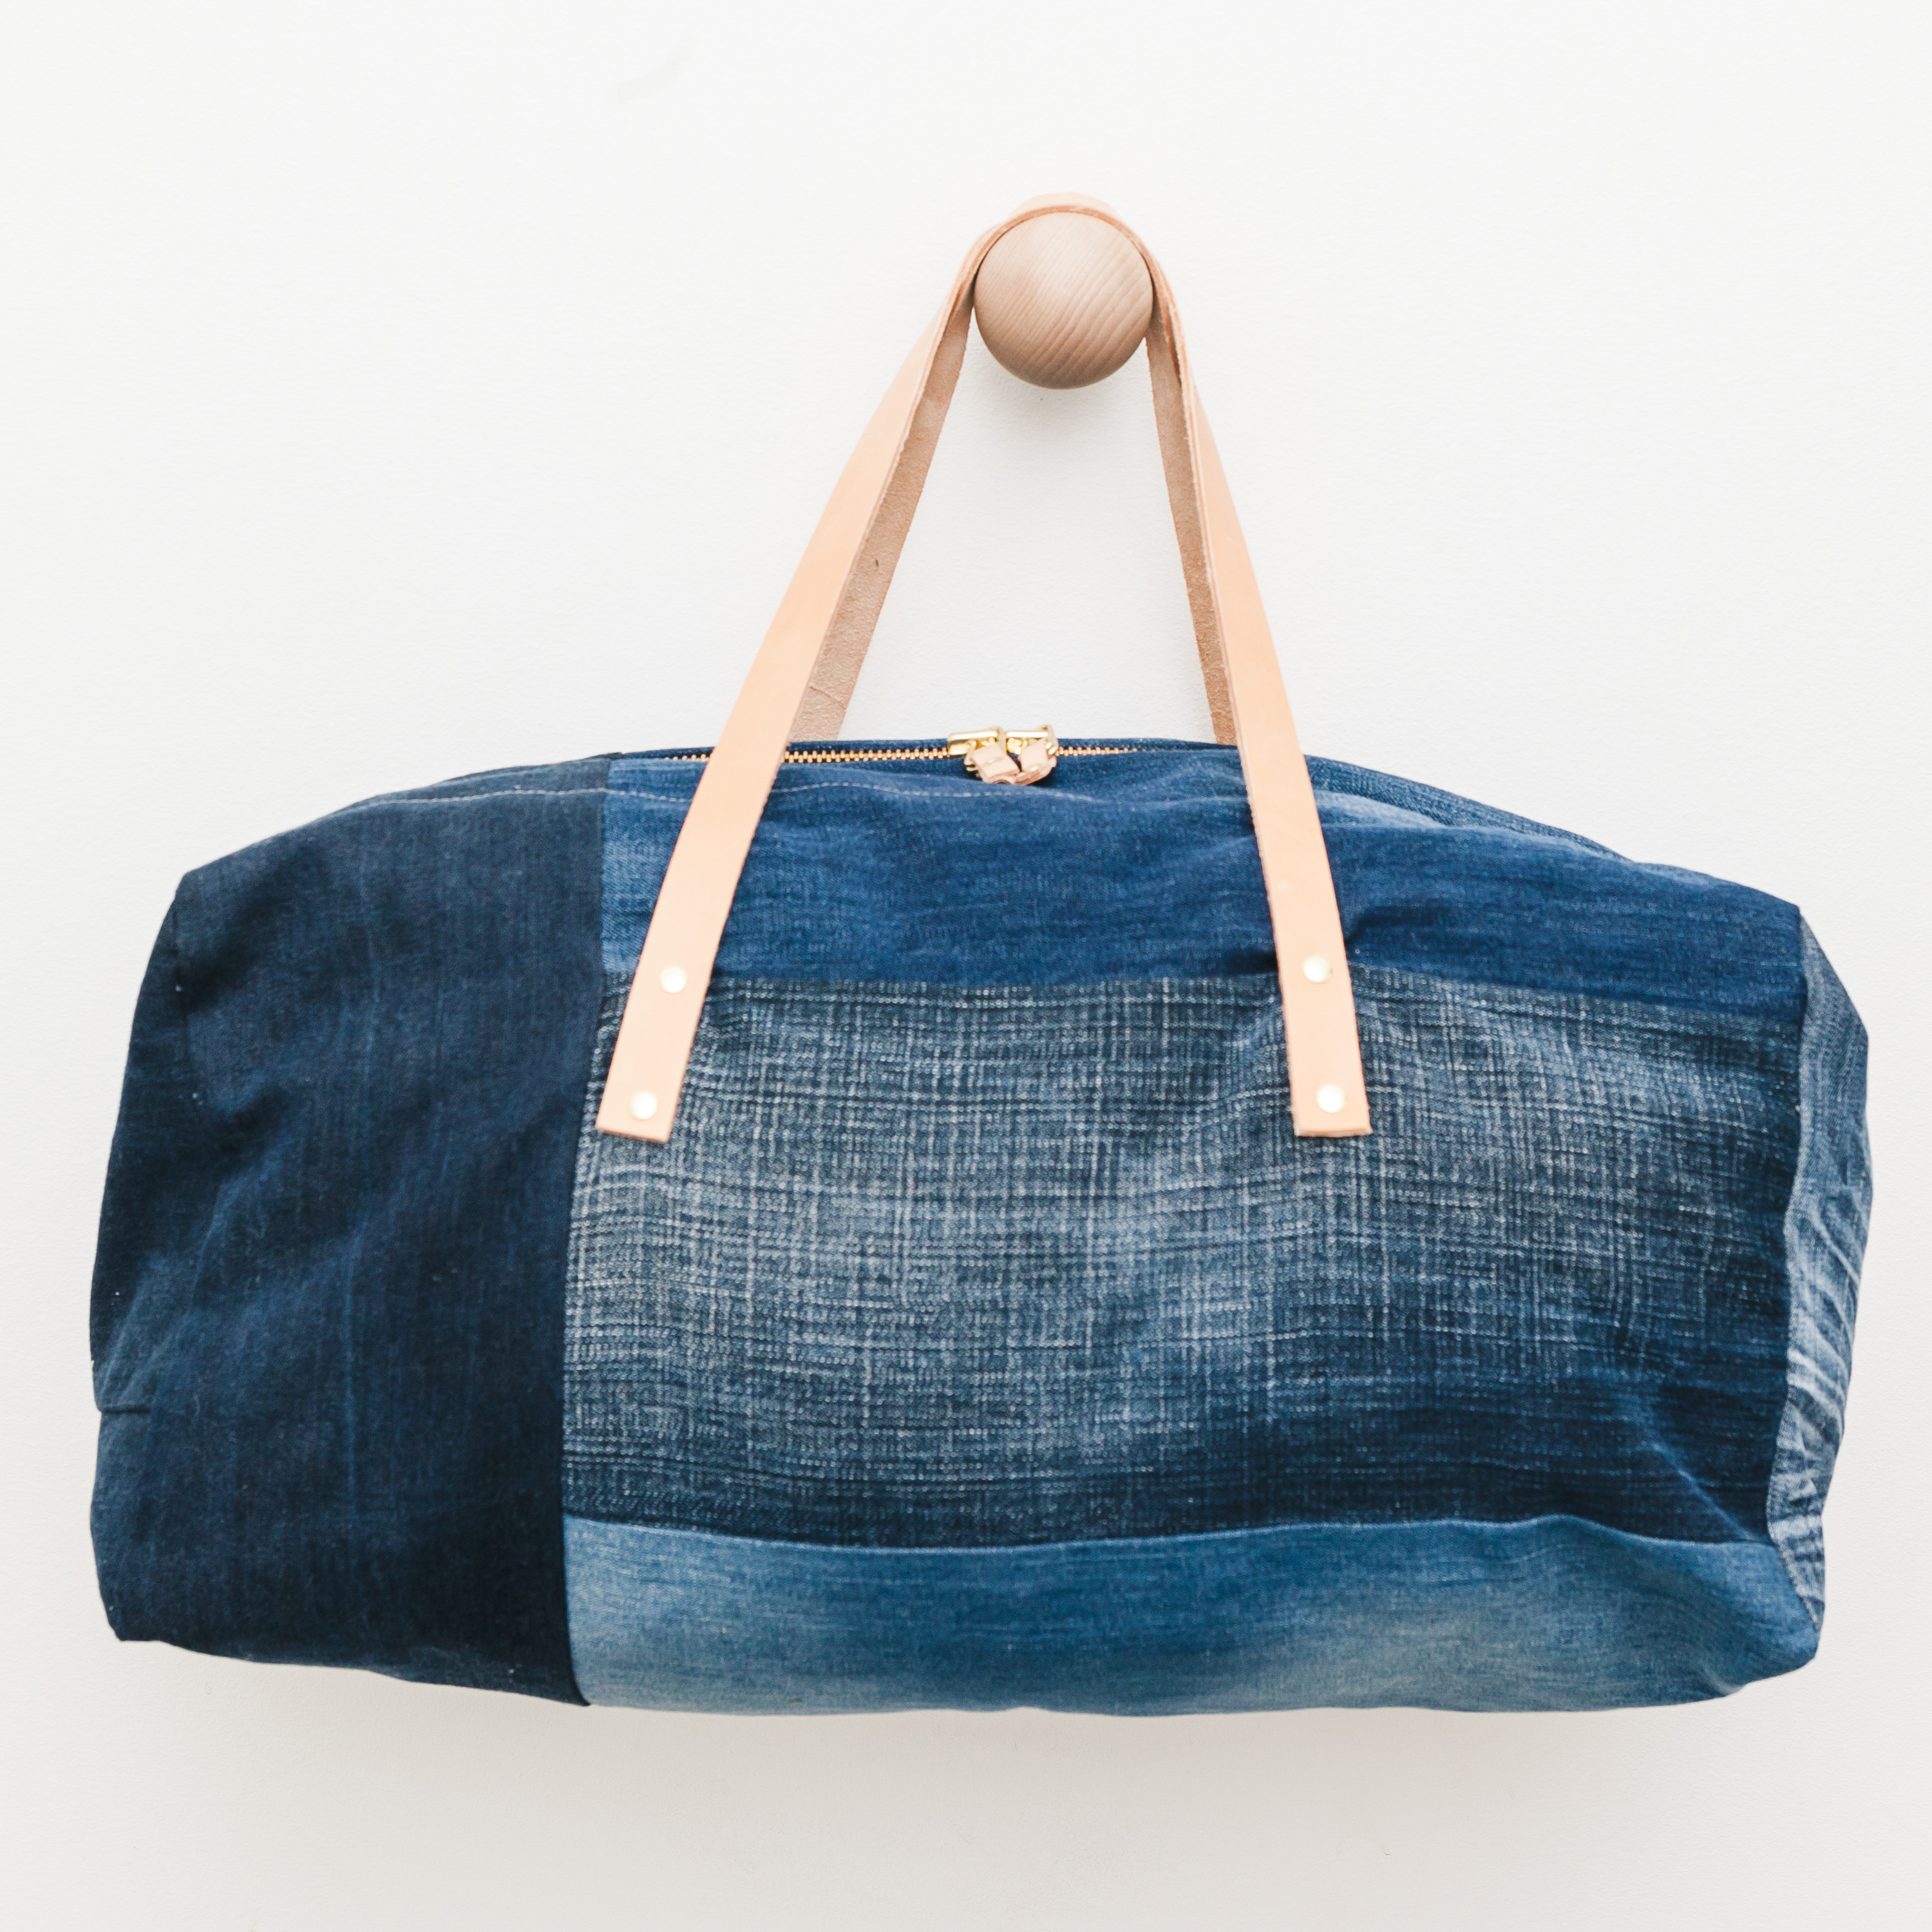 SOLD OUT Naked Society duffle bag, denim